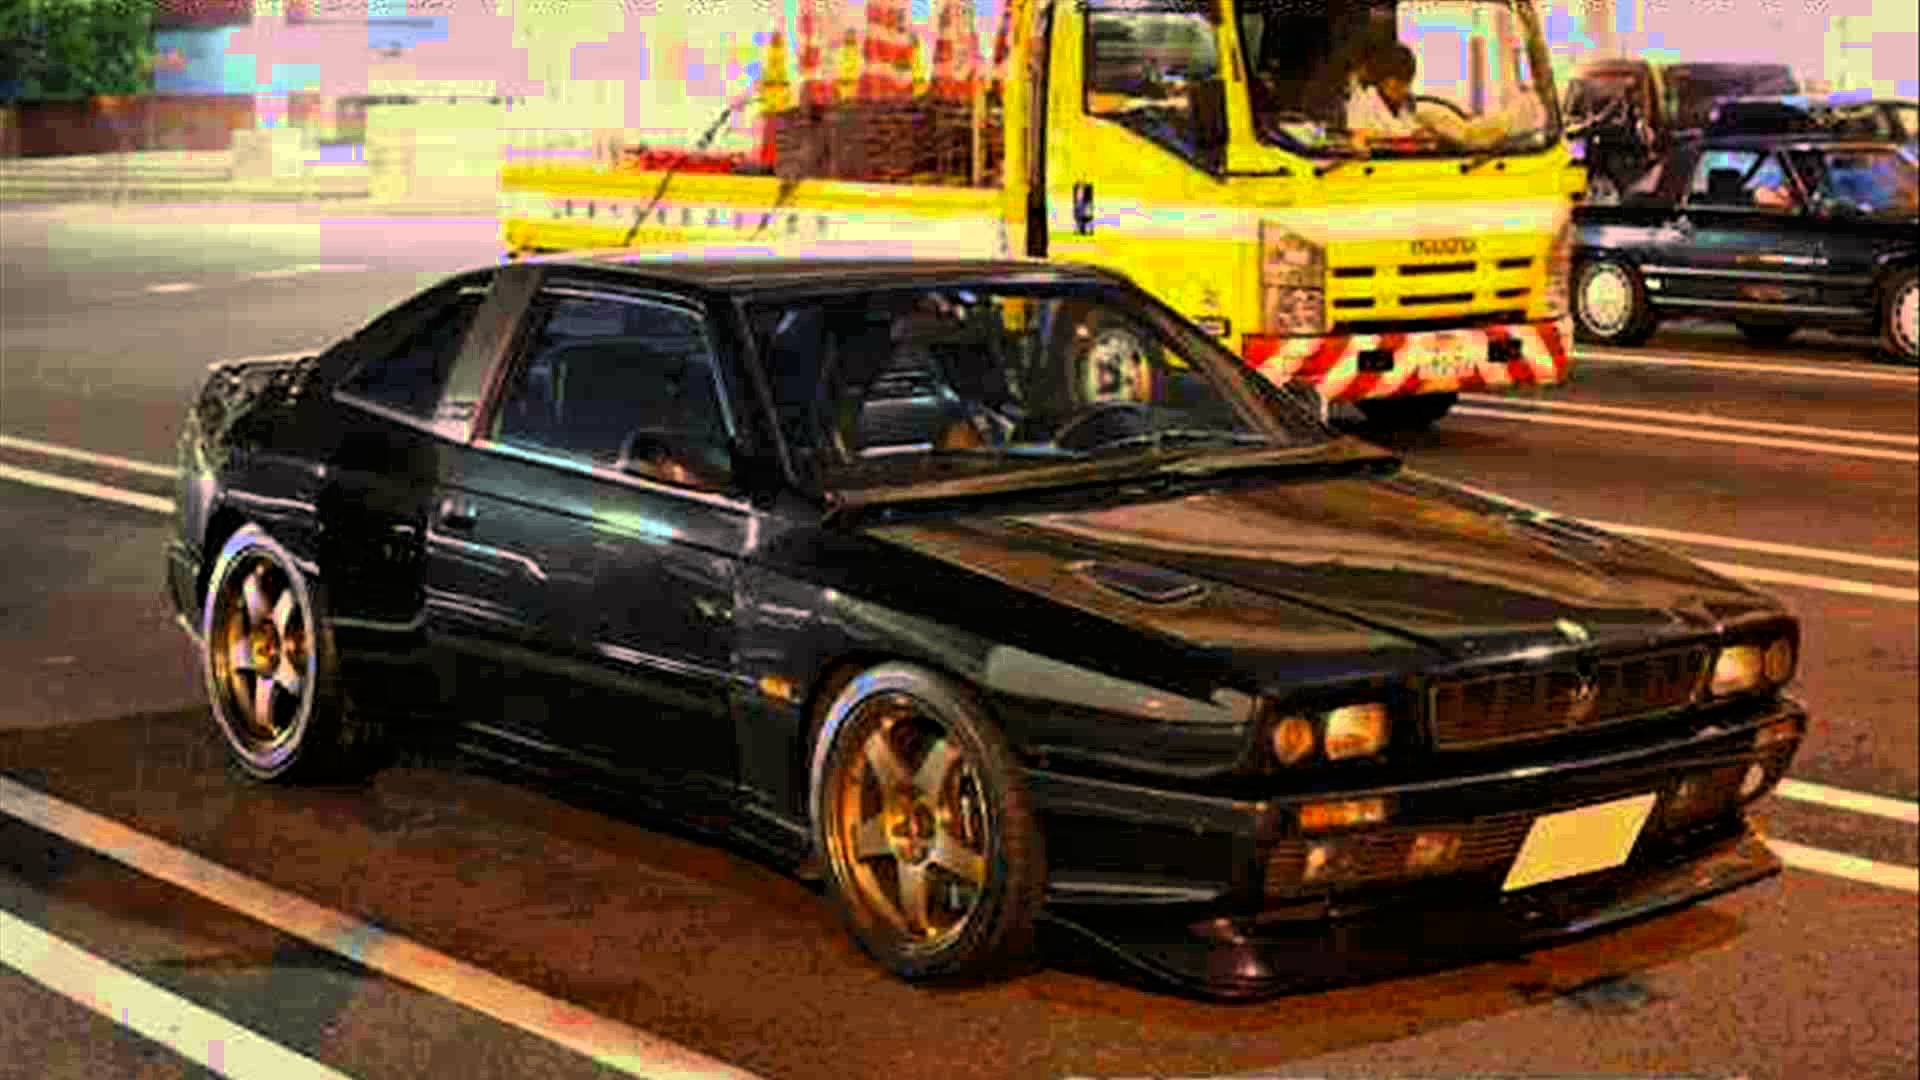 1991 Maserati Shamal   pictures, information and specs - Auto